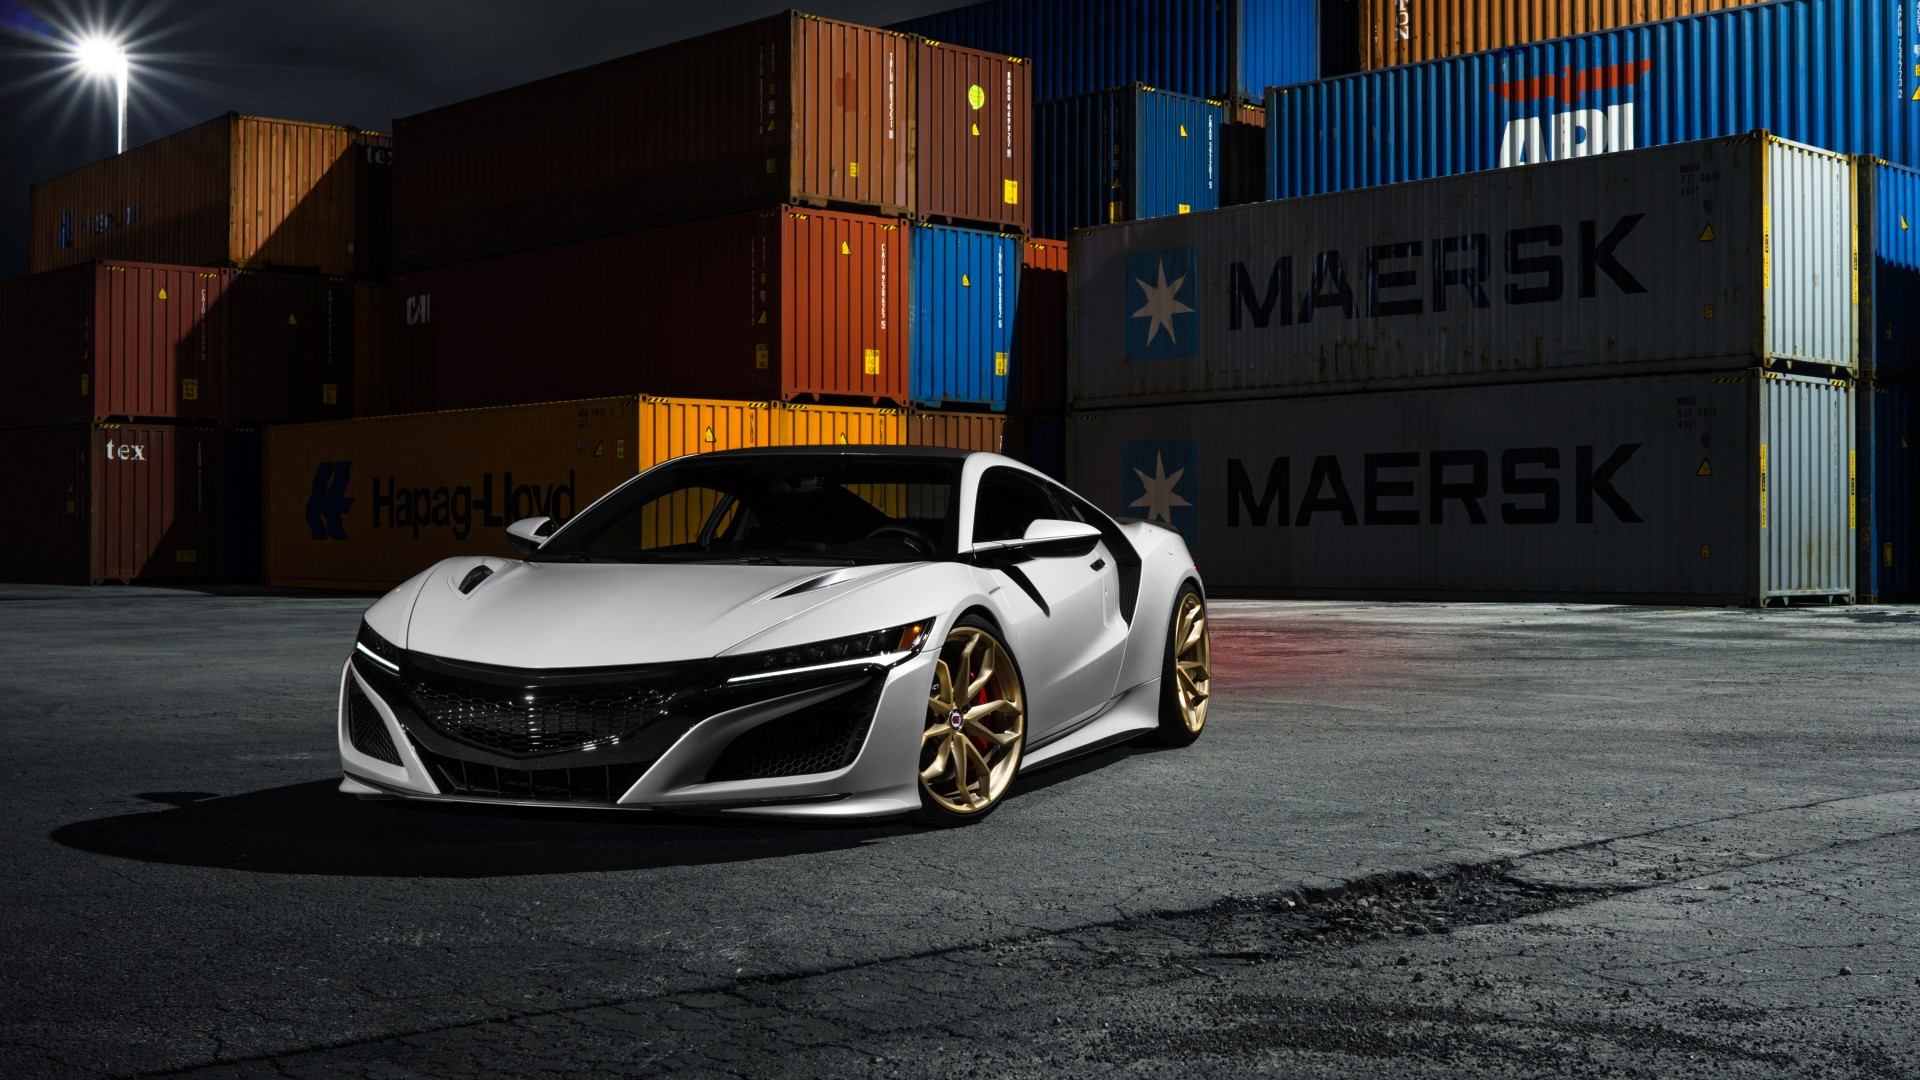 Acura NSX HRE Wheels 2017 5K Wallpaper | HD Car Wallpapers | ID #7246